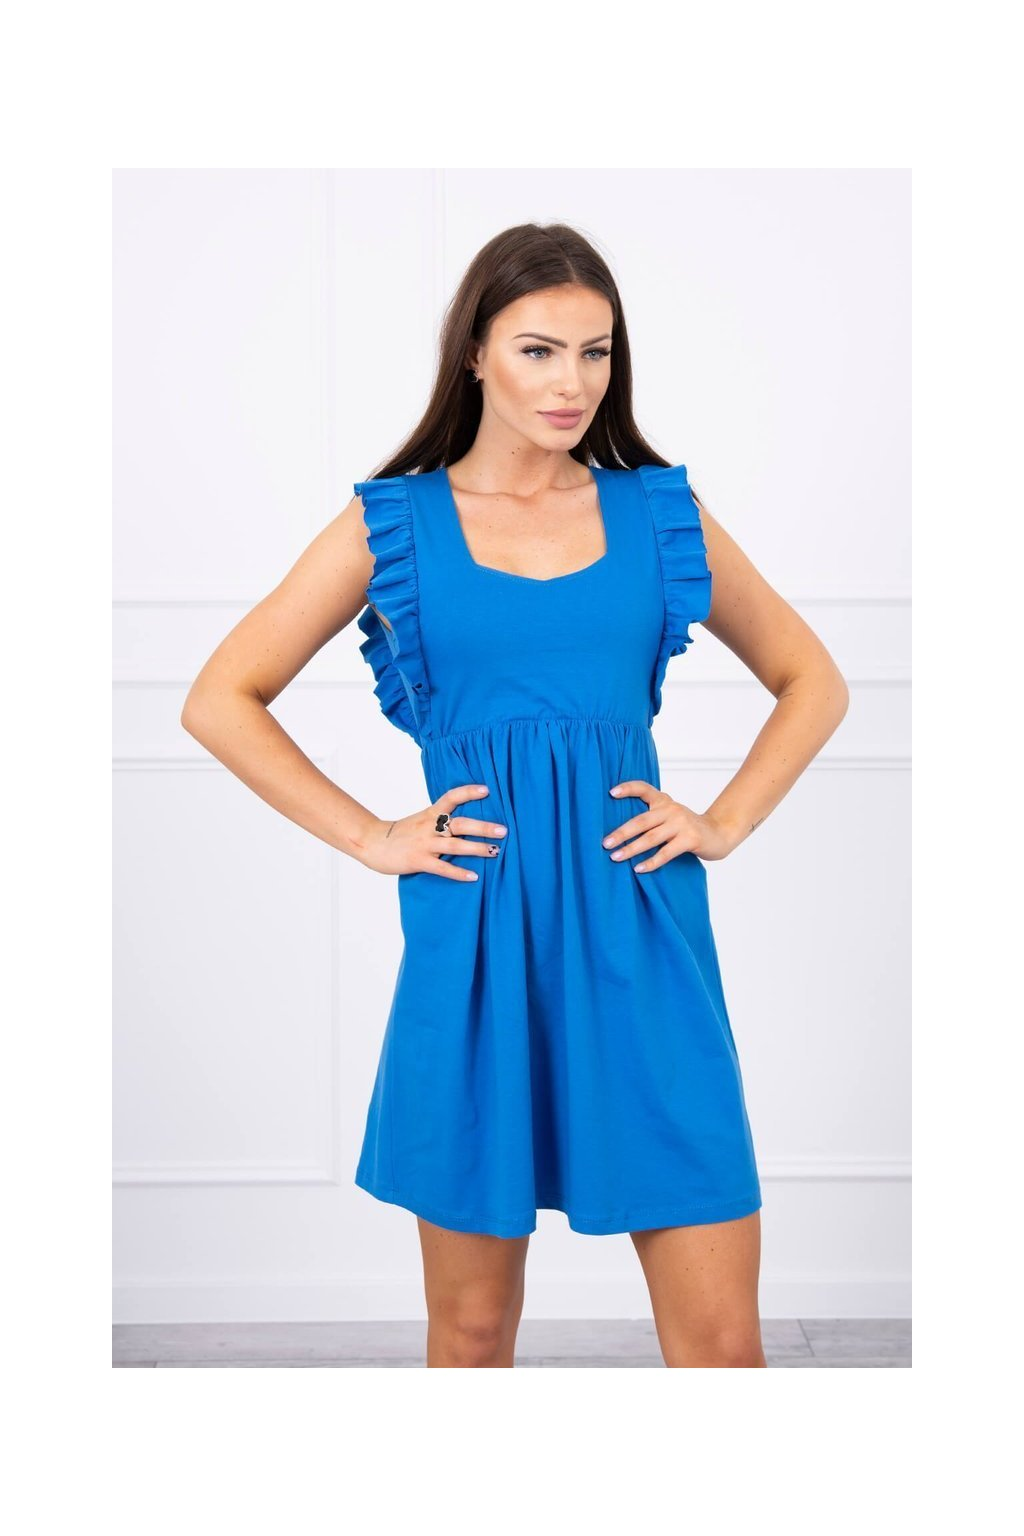 eng pl Dress with frills on the sides mauve blue 17656 3